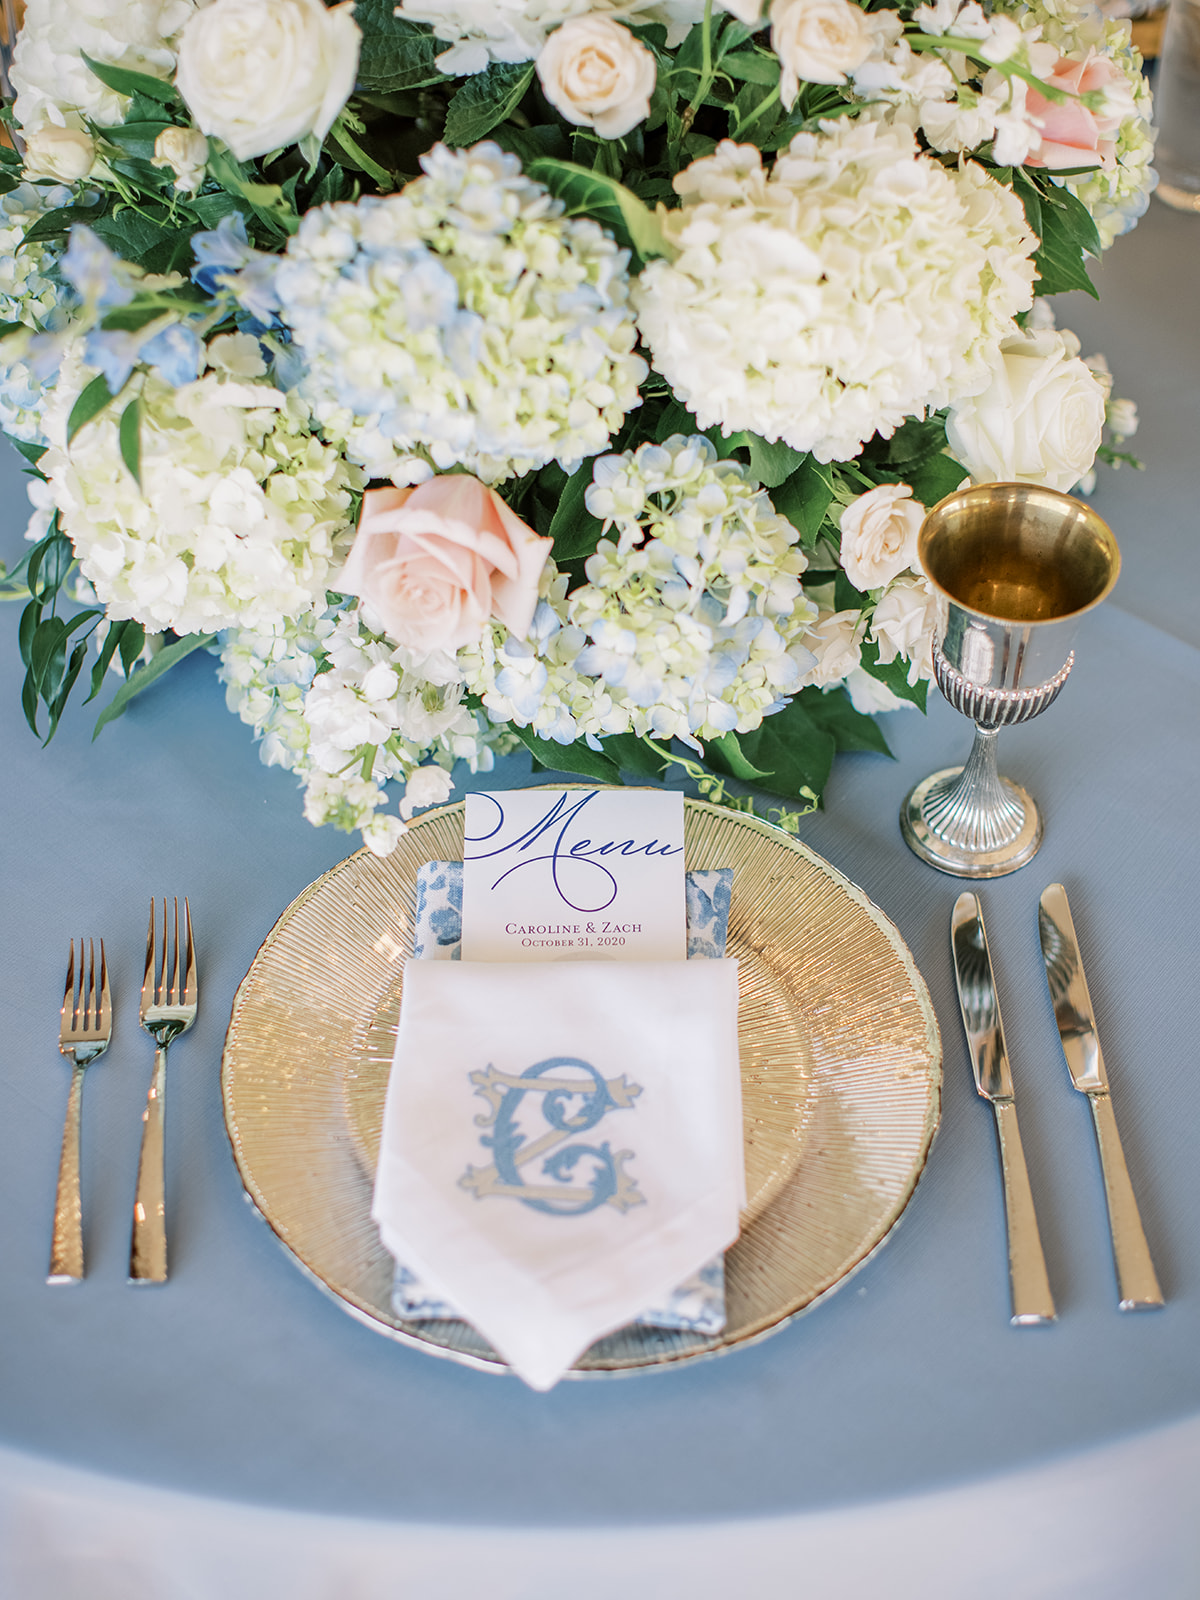 Gold wedding plate chargers and white hydrangea centerpieces